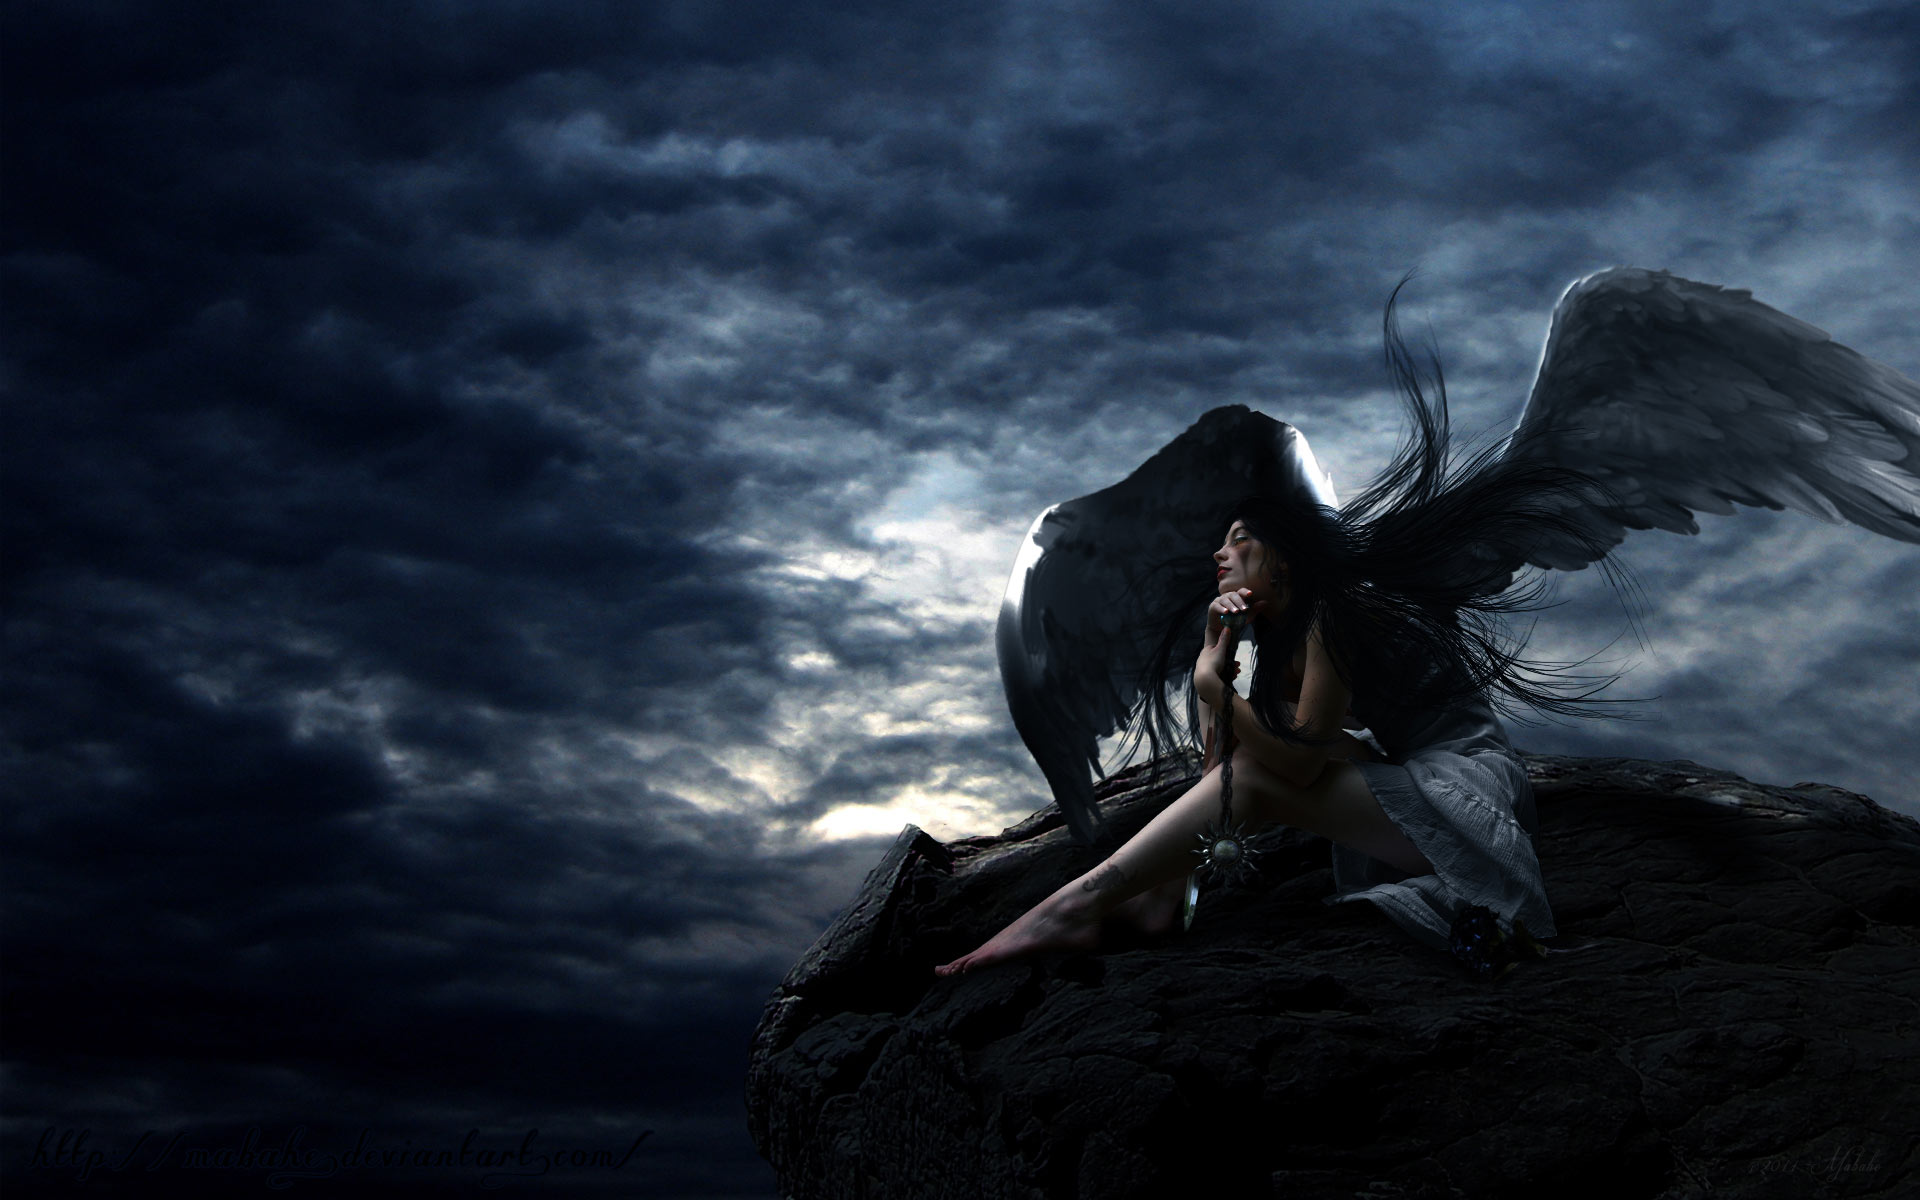 Gothic Angel Lady 1920x1200 pixel Popular HD Wallpaper 31102 1920x1200